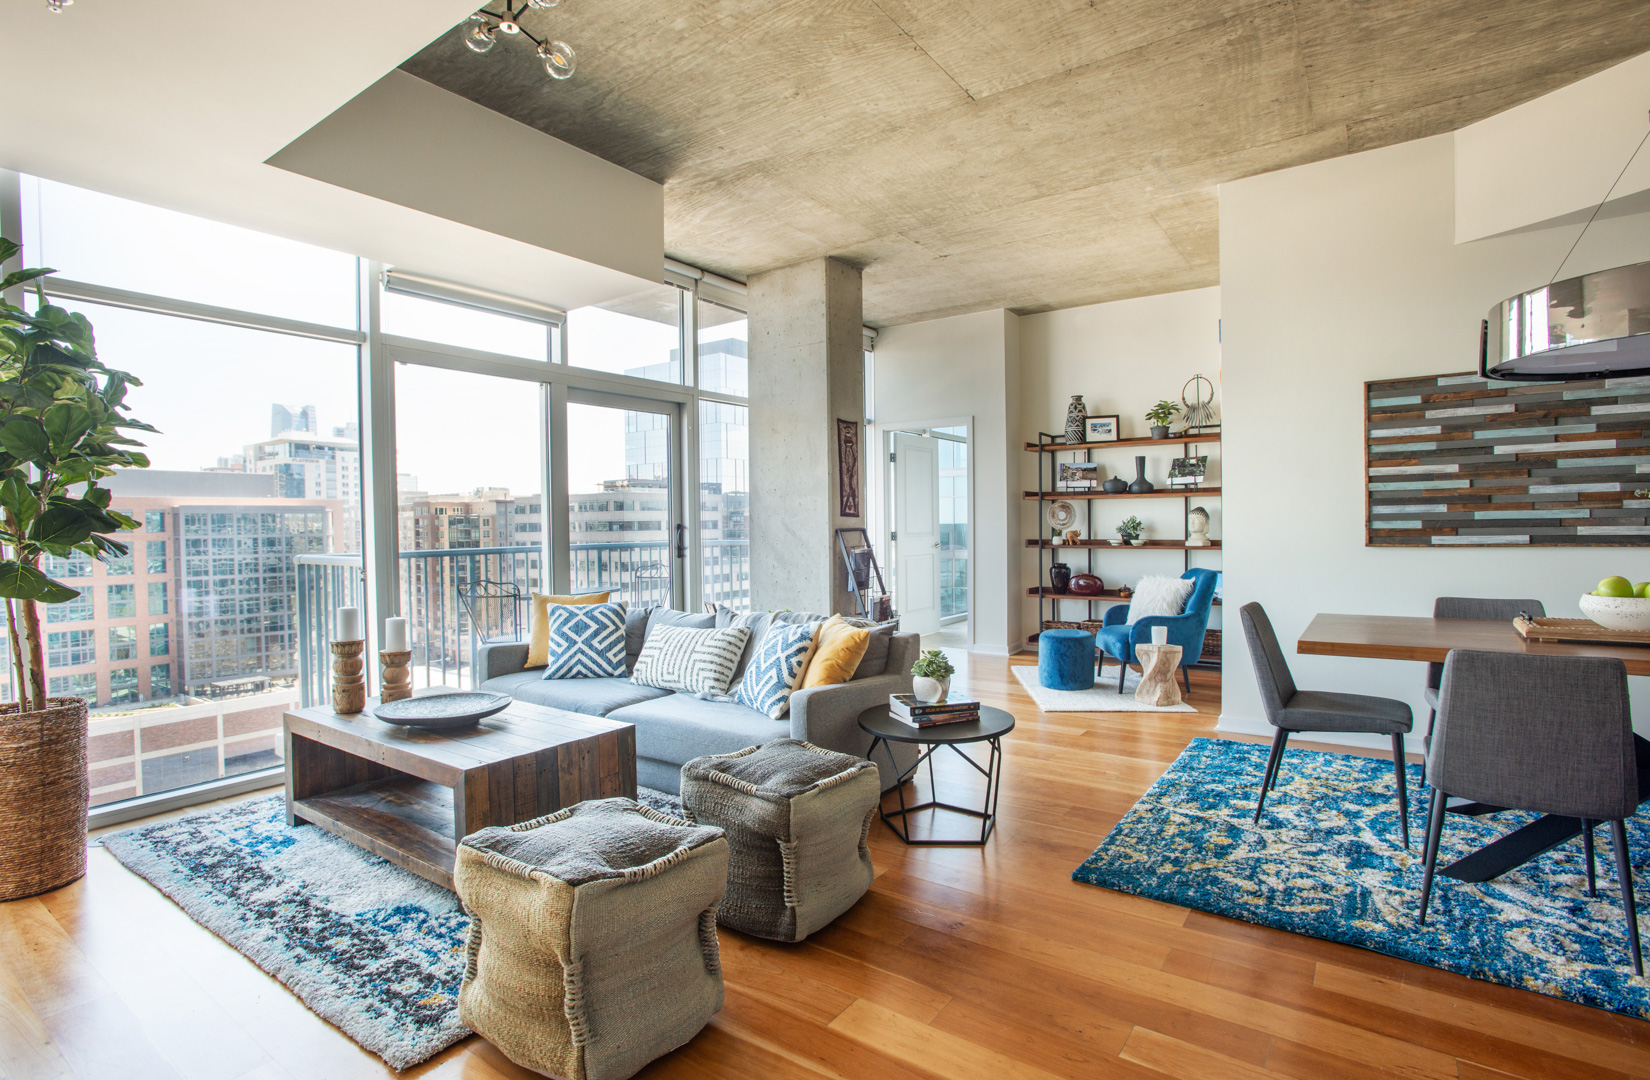 Glass House Loft wide view including dining living and reading nook